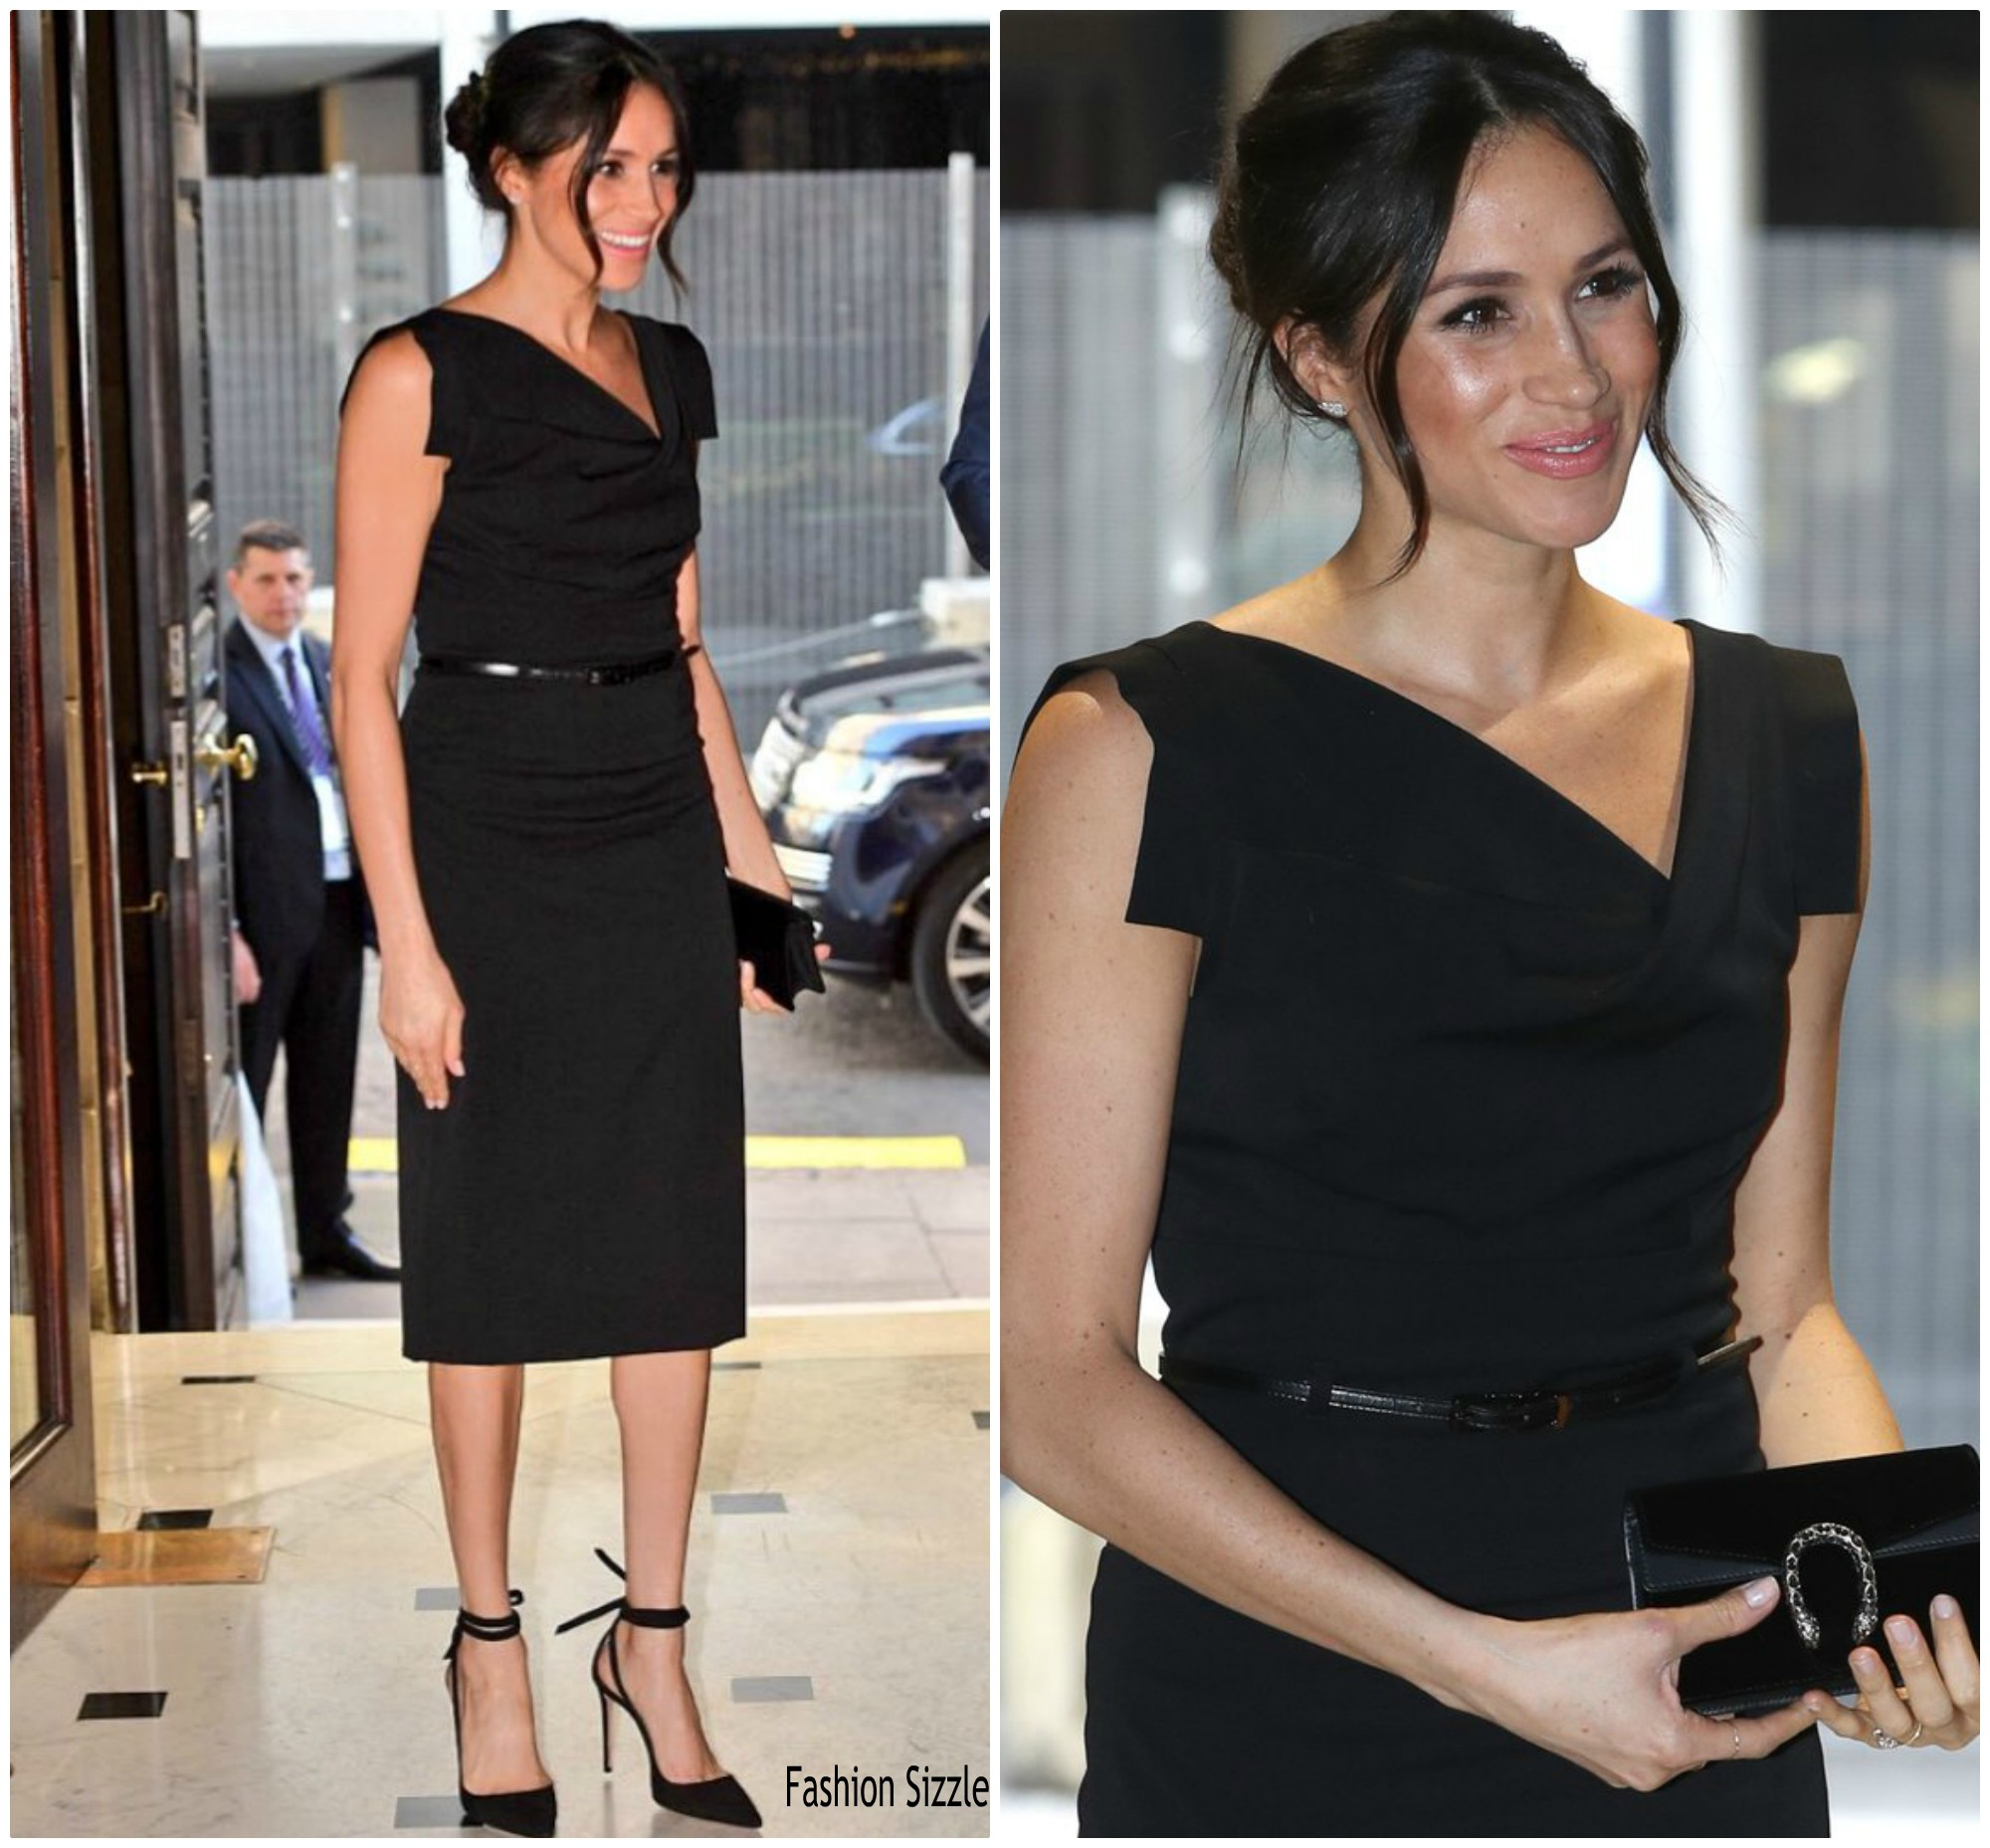 meghan-markle-in-jackie-o-dress-commonwealth-heads-og-government-meeting